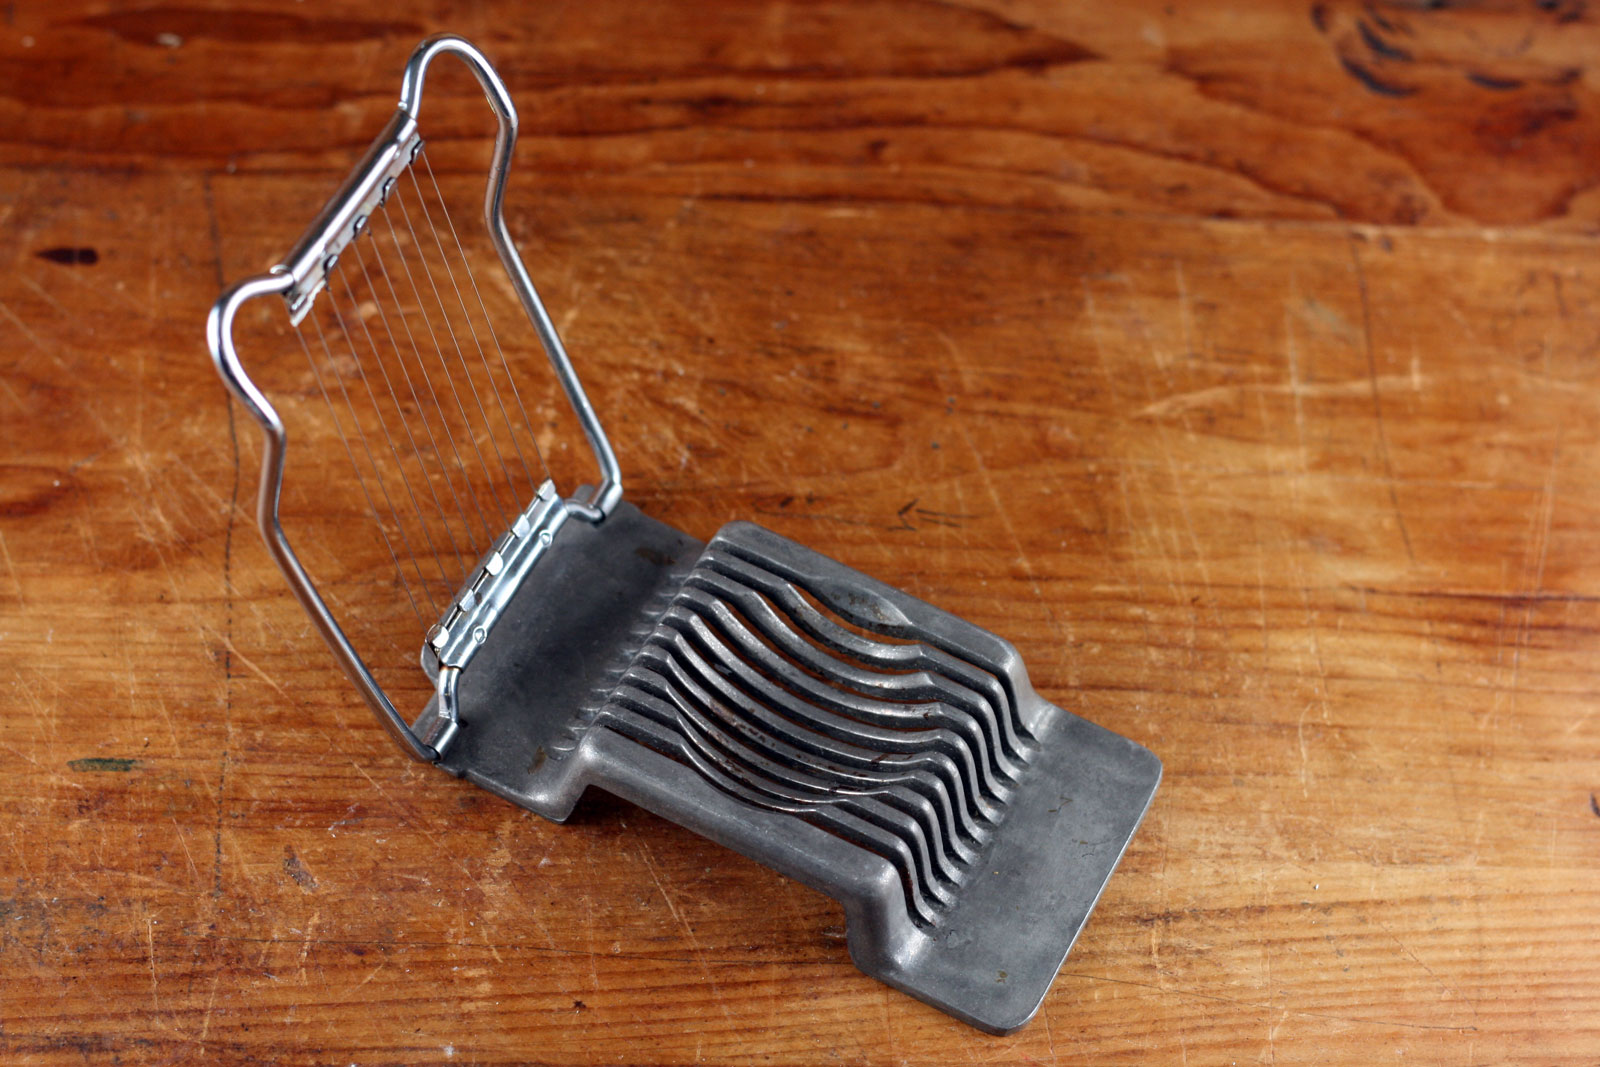 Metal egg slicer